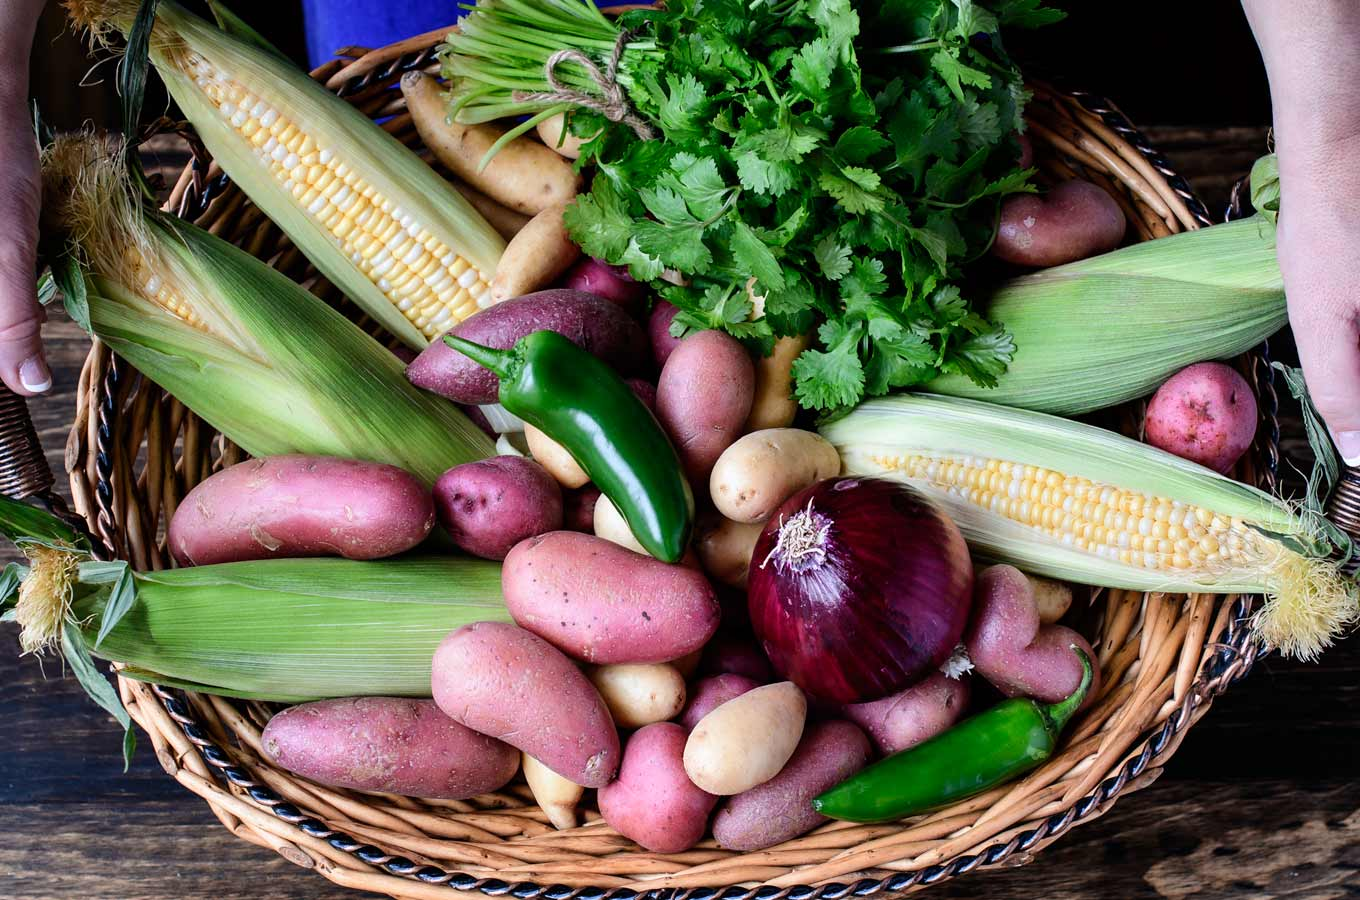 Basket of potatoes, corn, cilantro, red onion and jalapeño